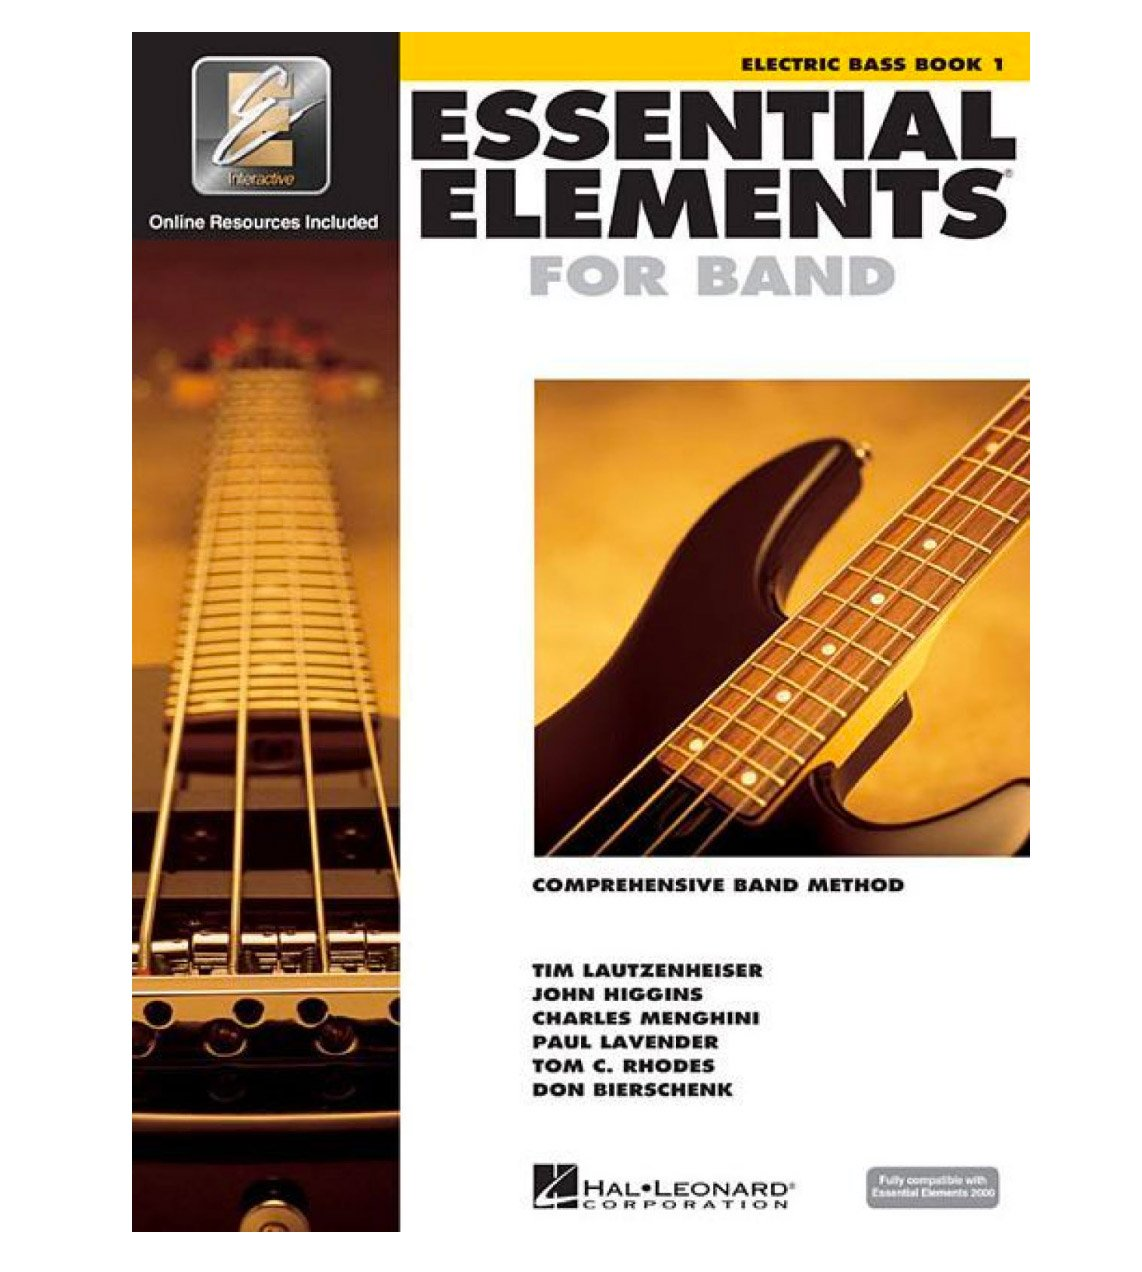 Essential Elements for Band-Electric Bass, Book 1